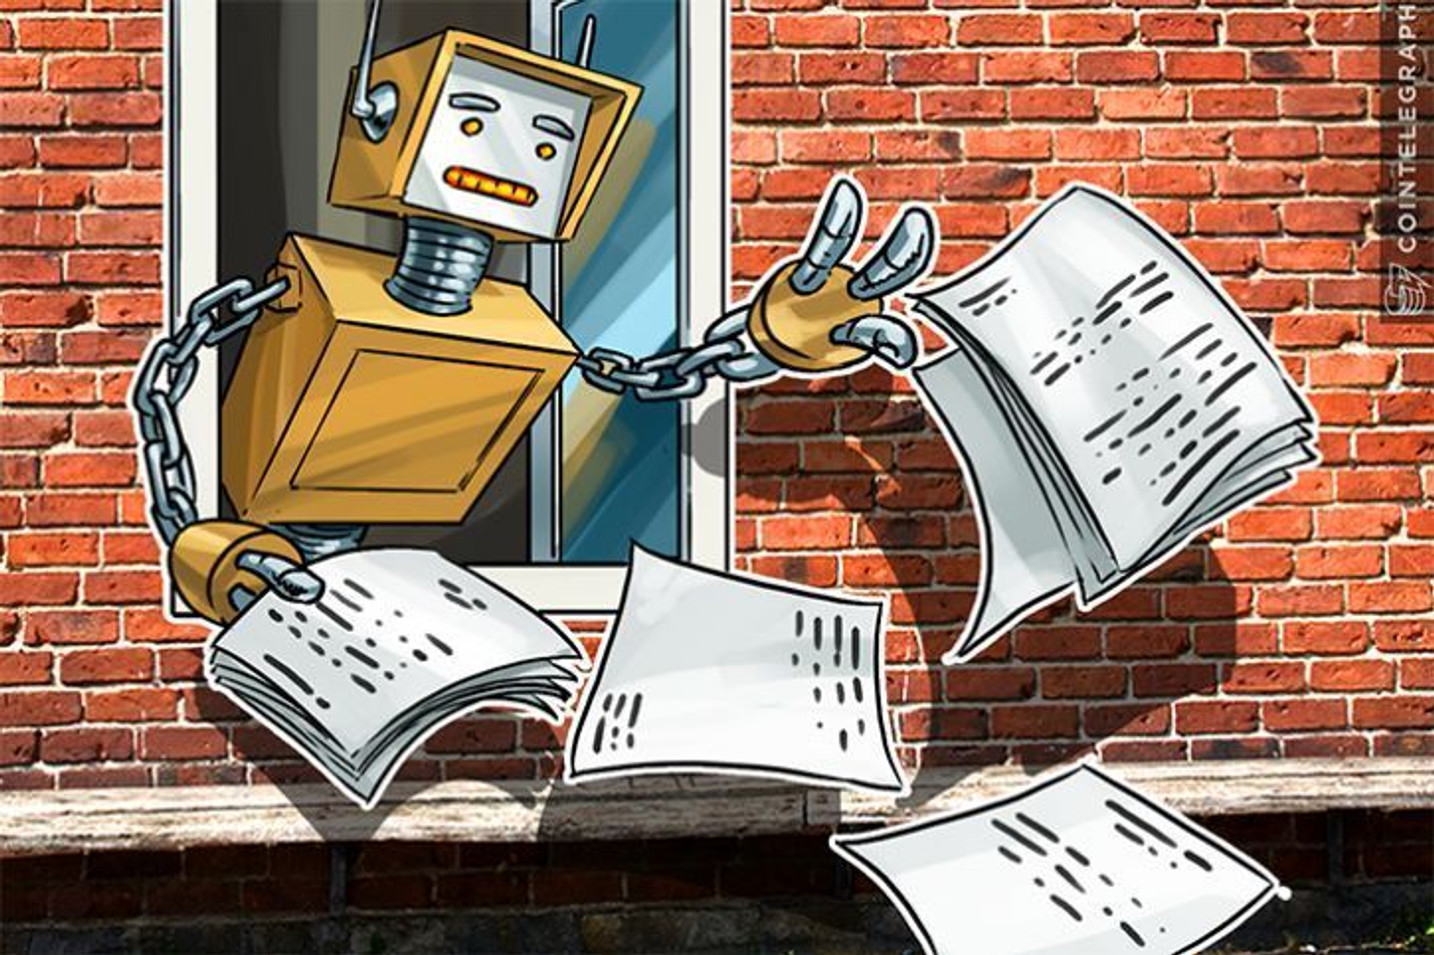 US General Services Agency Launches Information Portal Listing Possible Blockchain Technology Applications